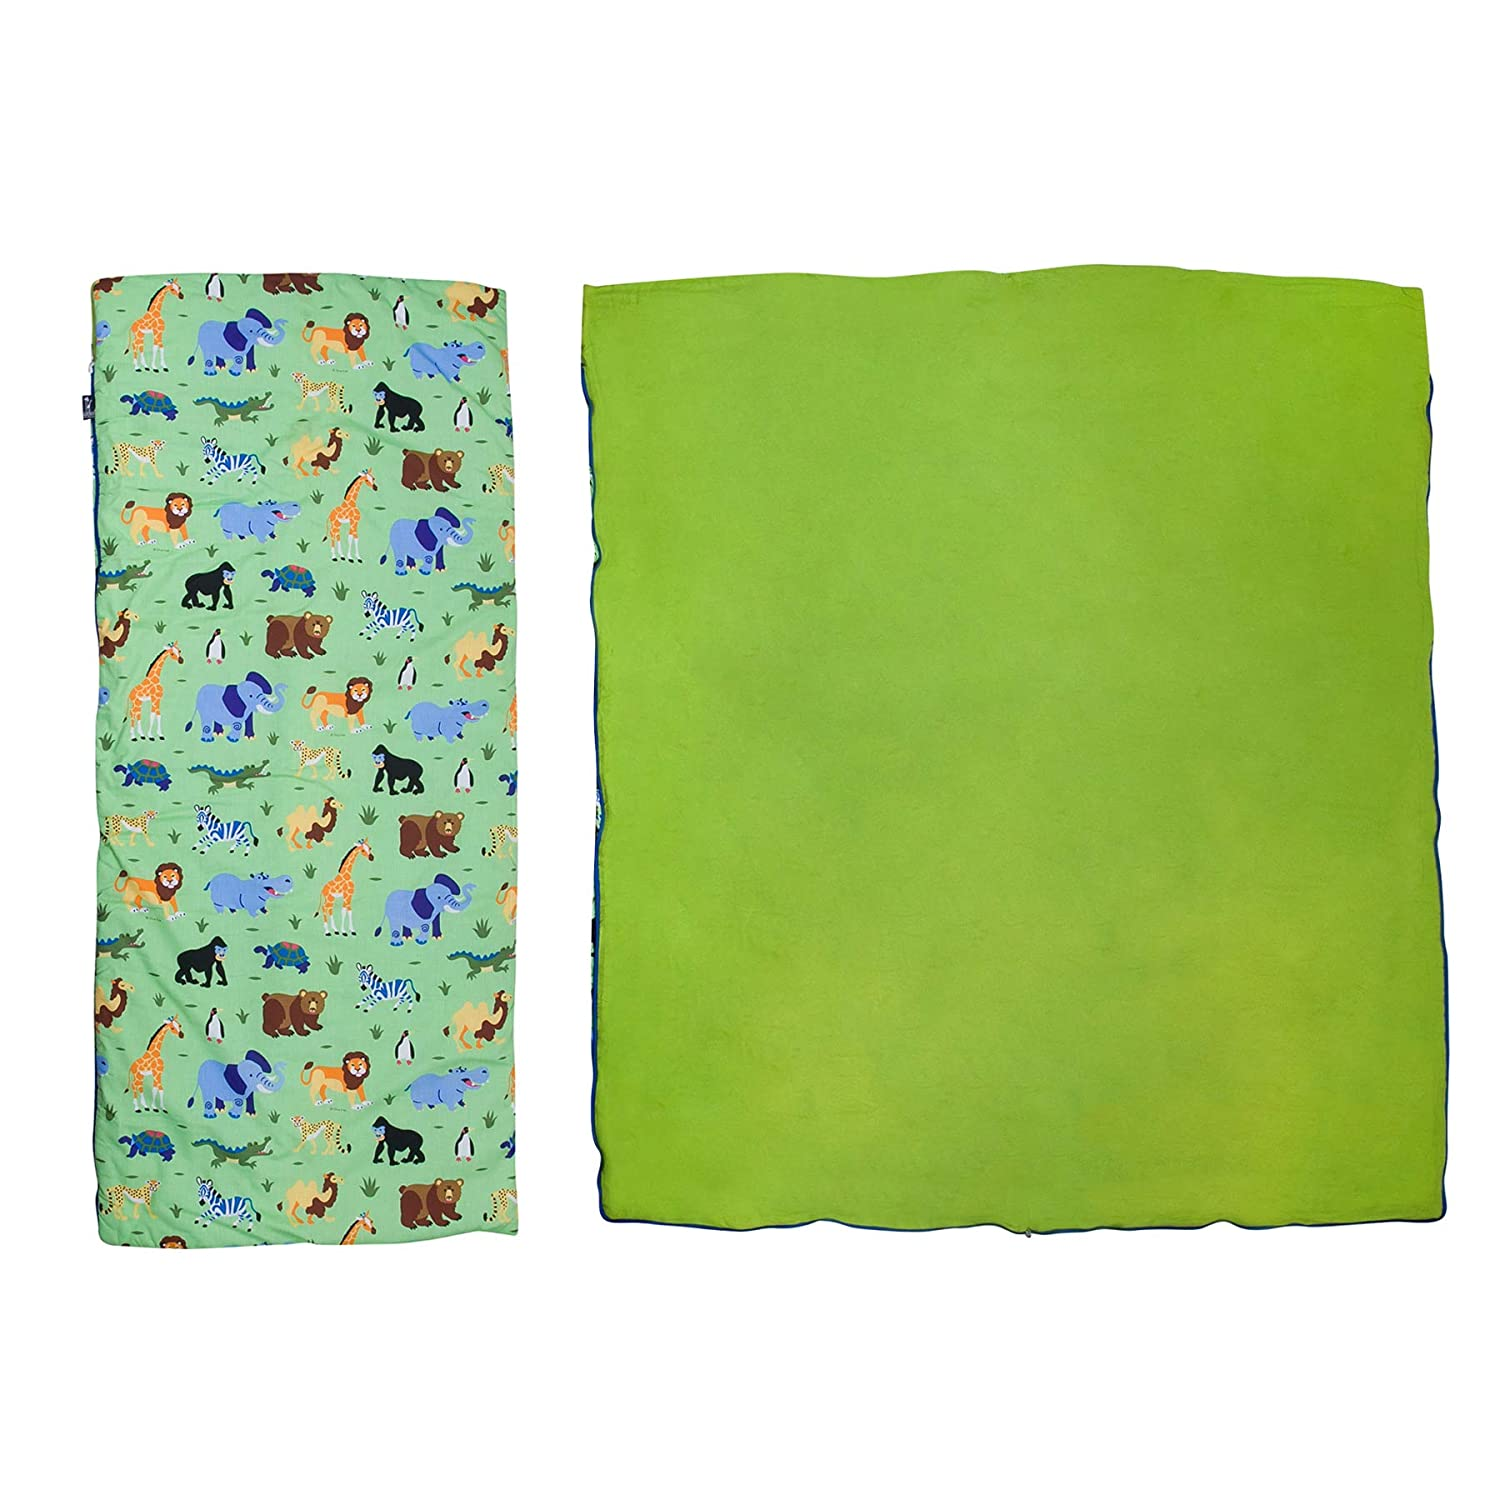 Wildkin Original Sleeping Bag Cars 17801 Features Matching Travel Pillow and Coordinating Storage Bag Perfect for Sleeping On-The-Go